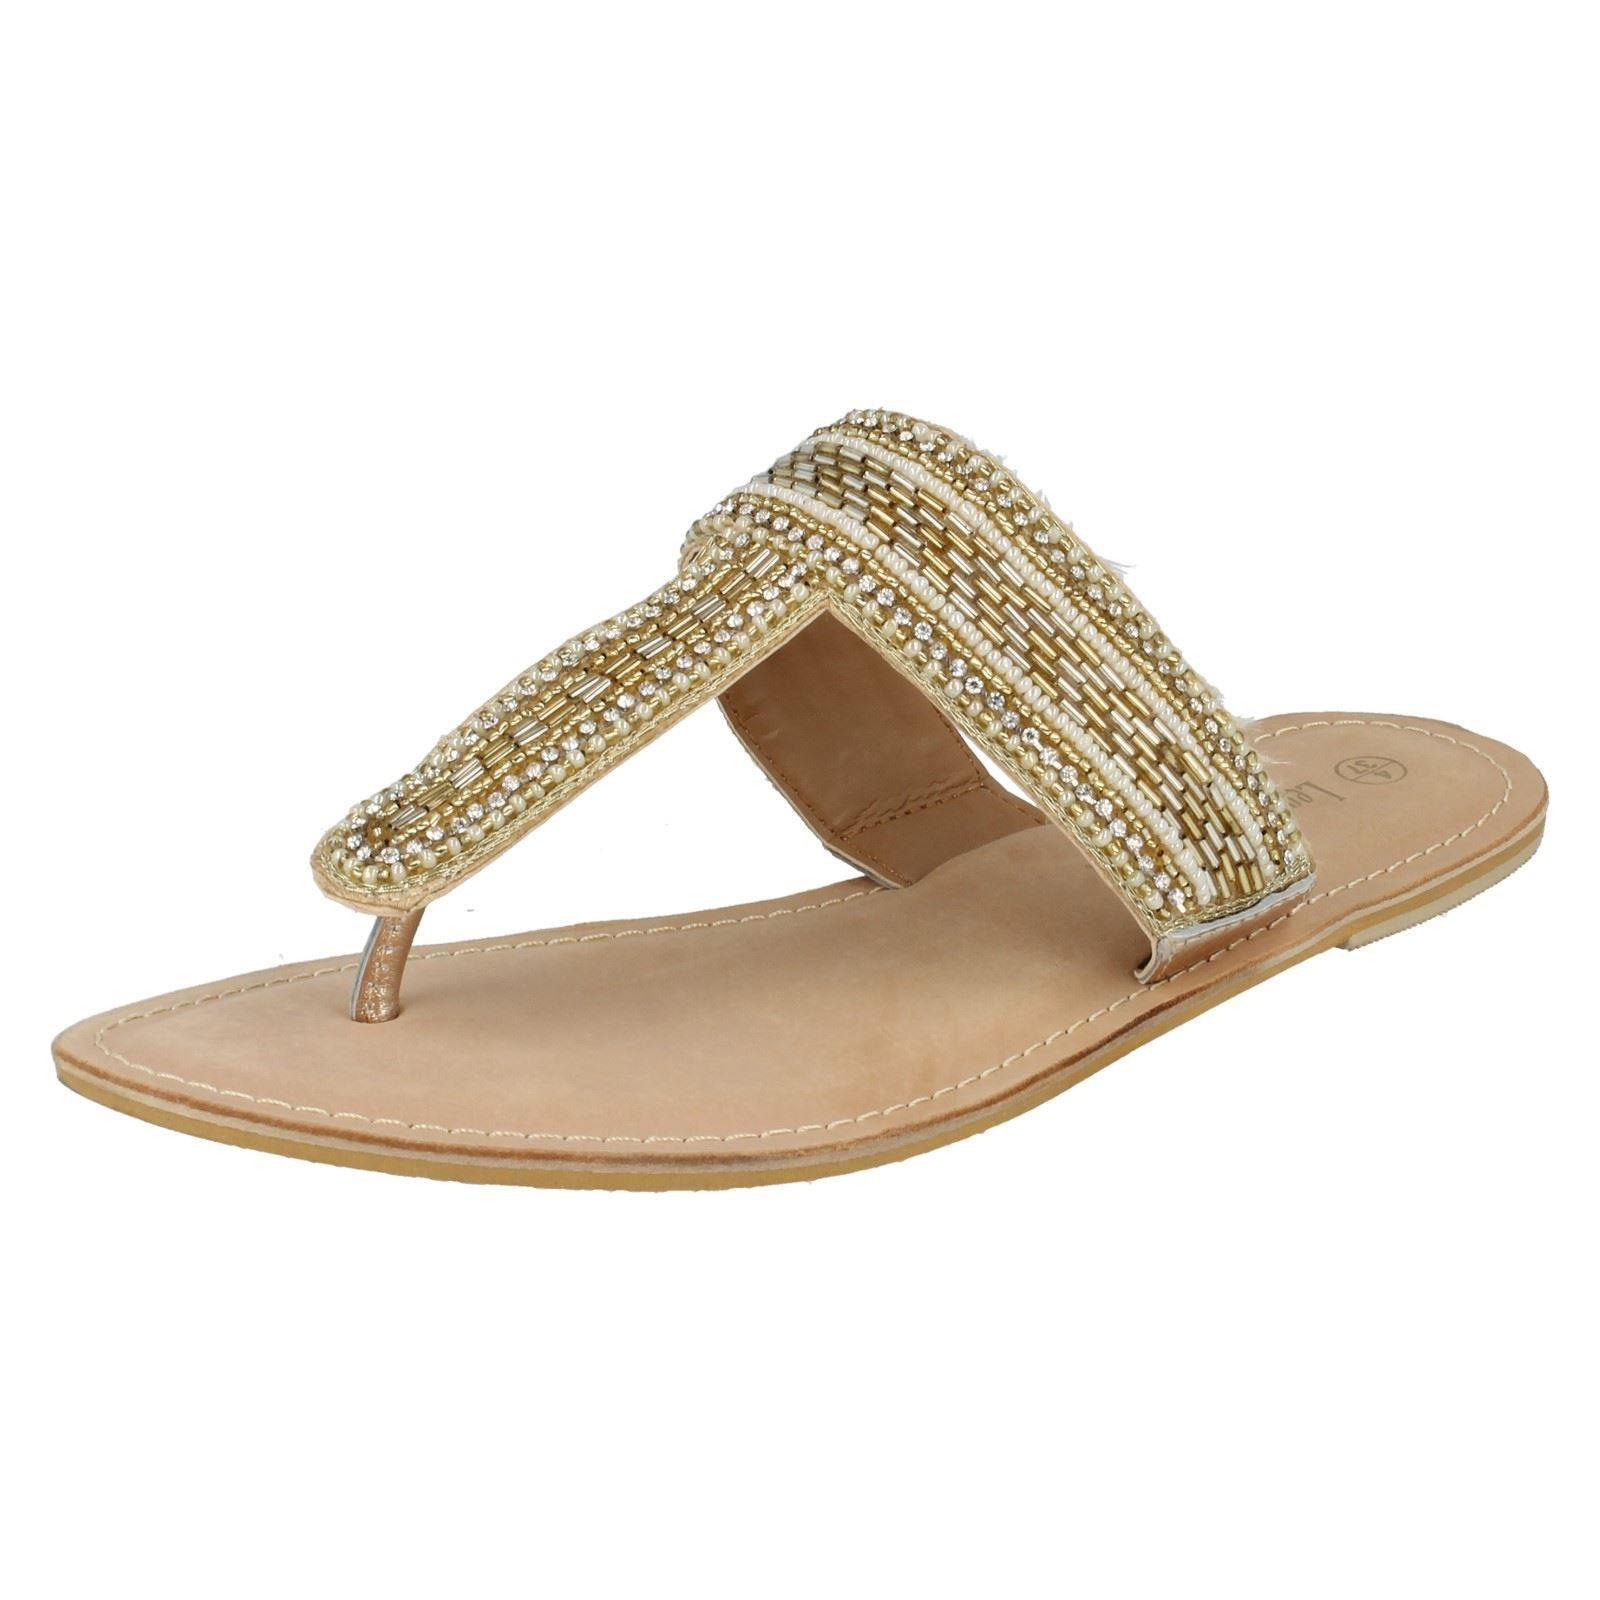 SALE Leather Beaded Collection F0895 Ladies Gold Beaded Leather Leather Toe Post Sandals 9bea5a